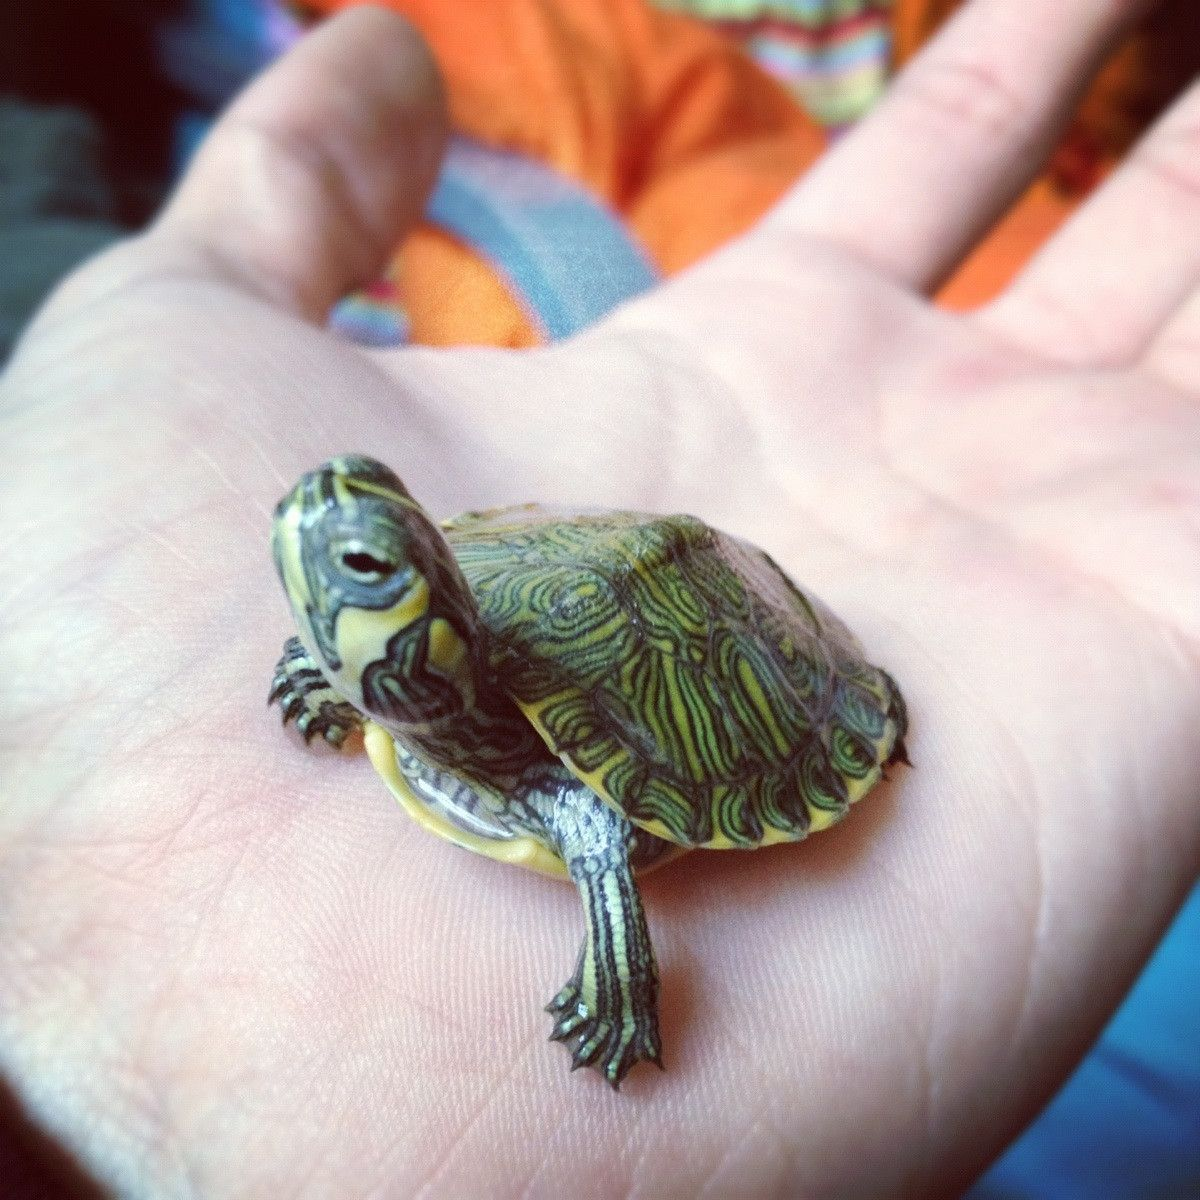 I Love Turtles Especially The Babies I Wish There Were